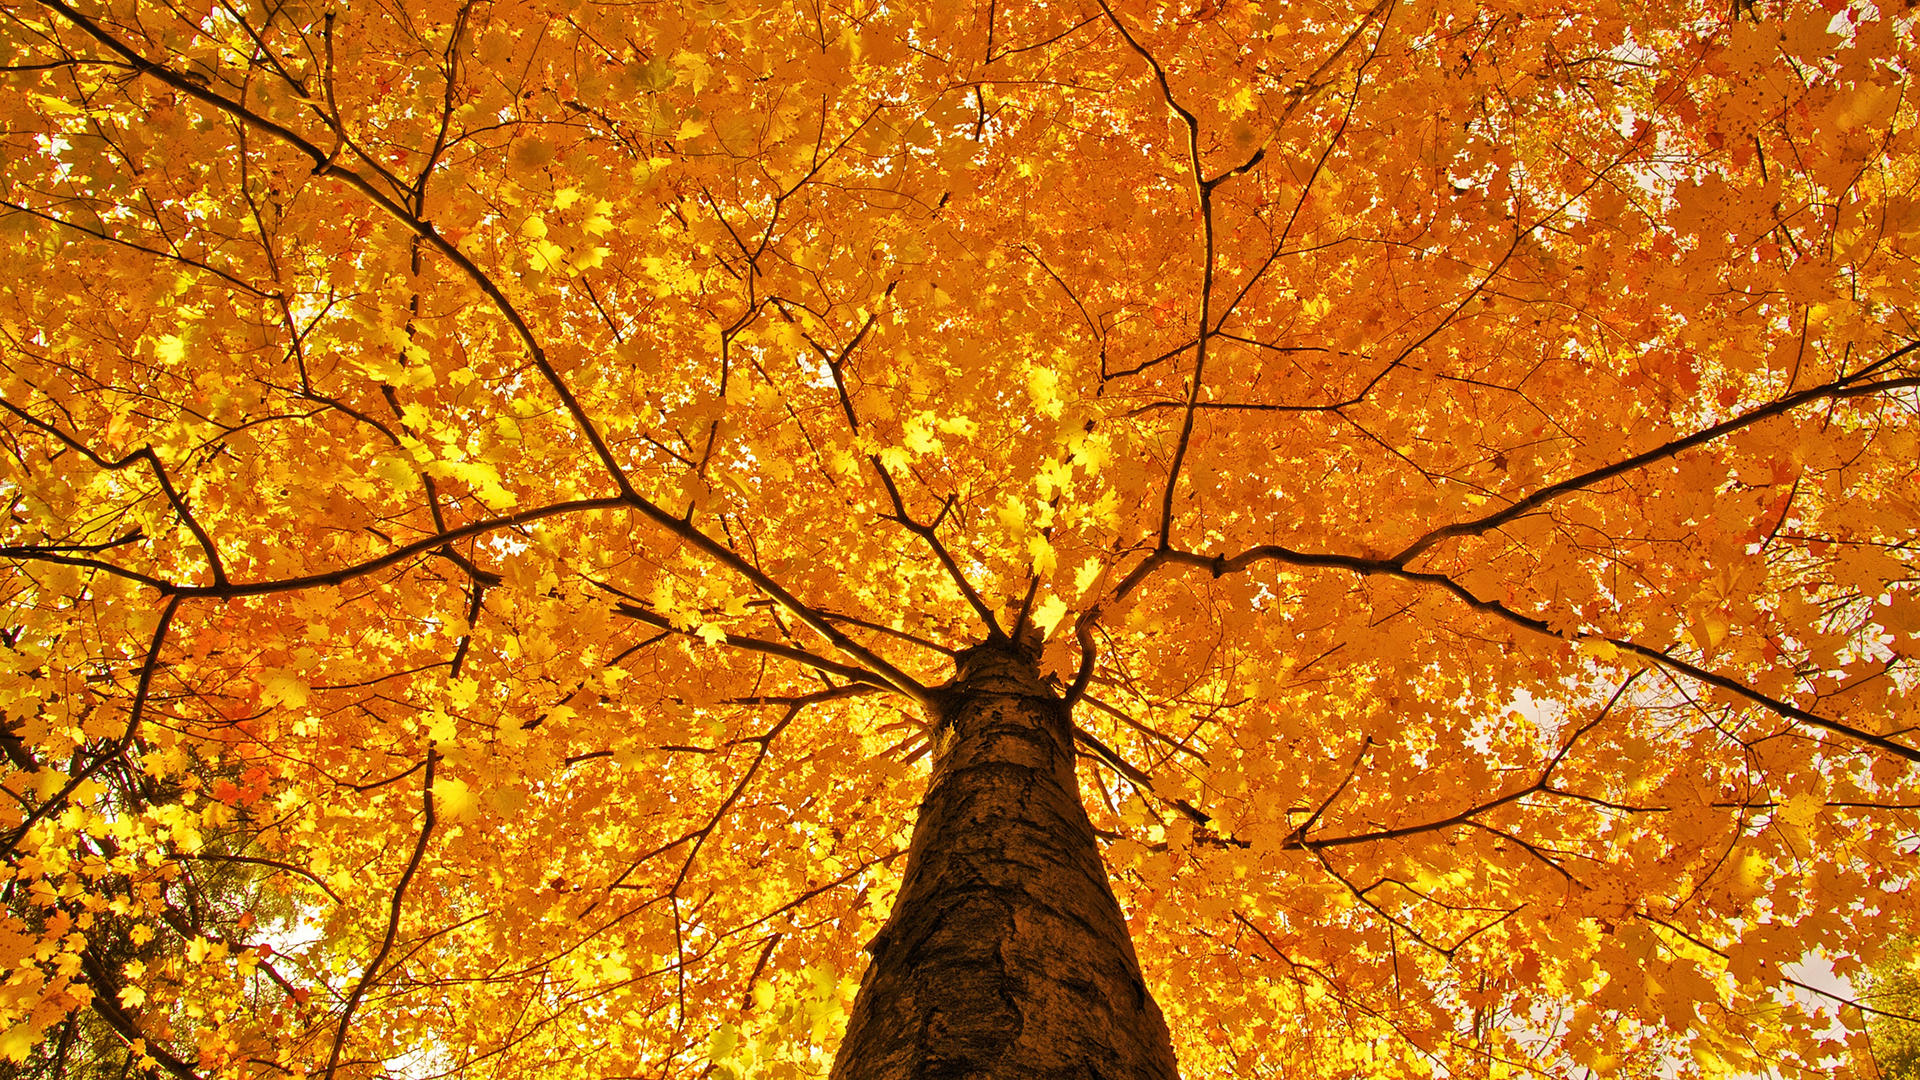 Black Iphone 7 Wallpaper Nature Trees Leaves Color Yellow Autumn Wallpaper 1920x1080